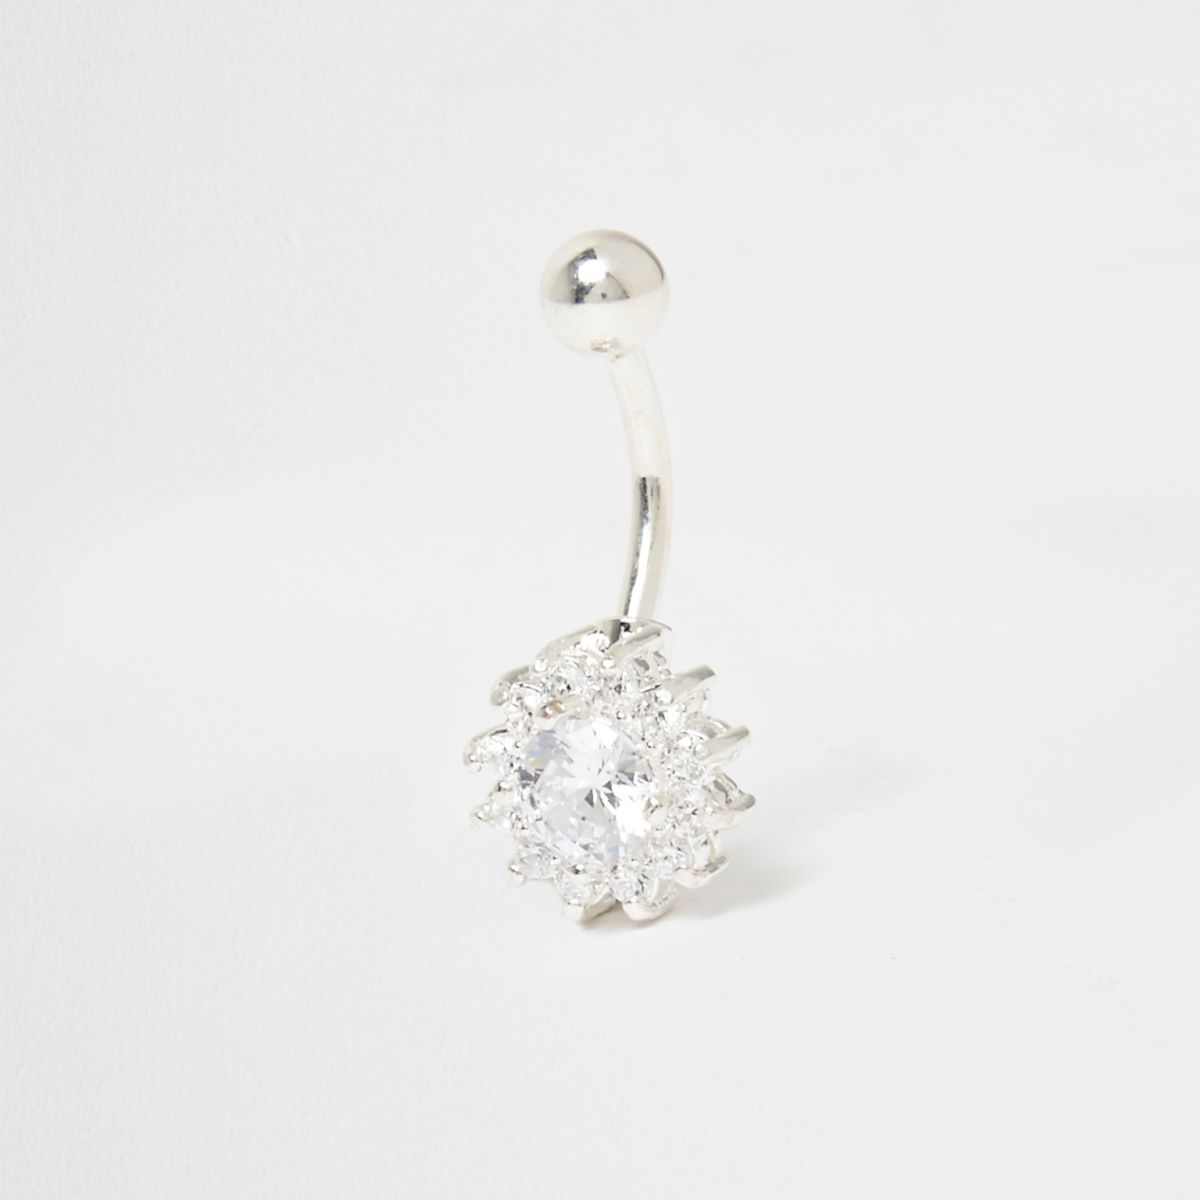 Cubic zirconia silver tone diamante belly bar